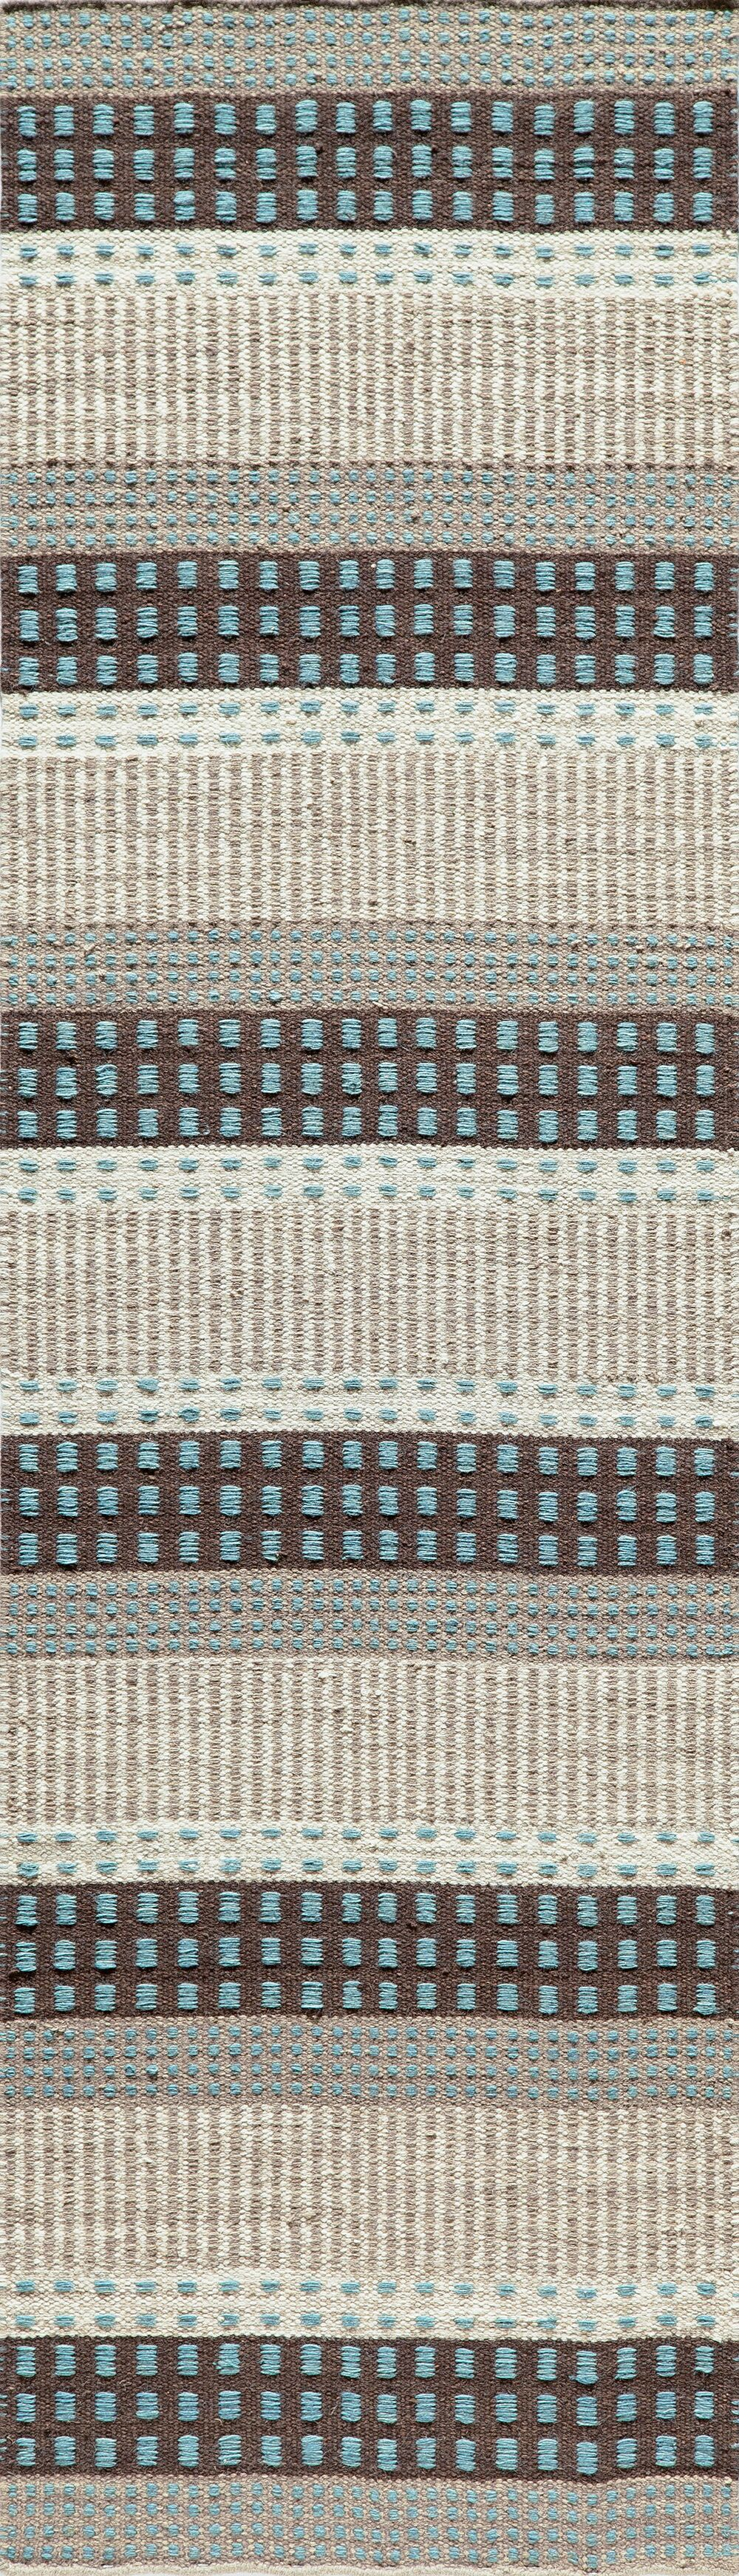 Epping Hand-Woven Blue Area Rug Rug Size: Rectangle 5' x 8'